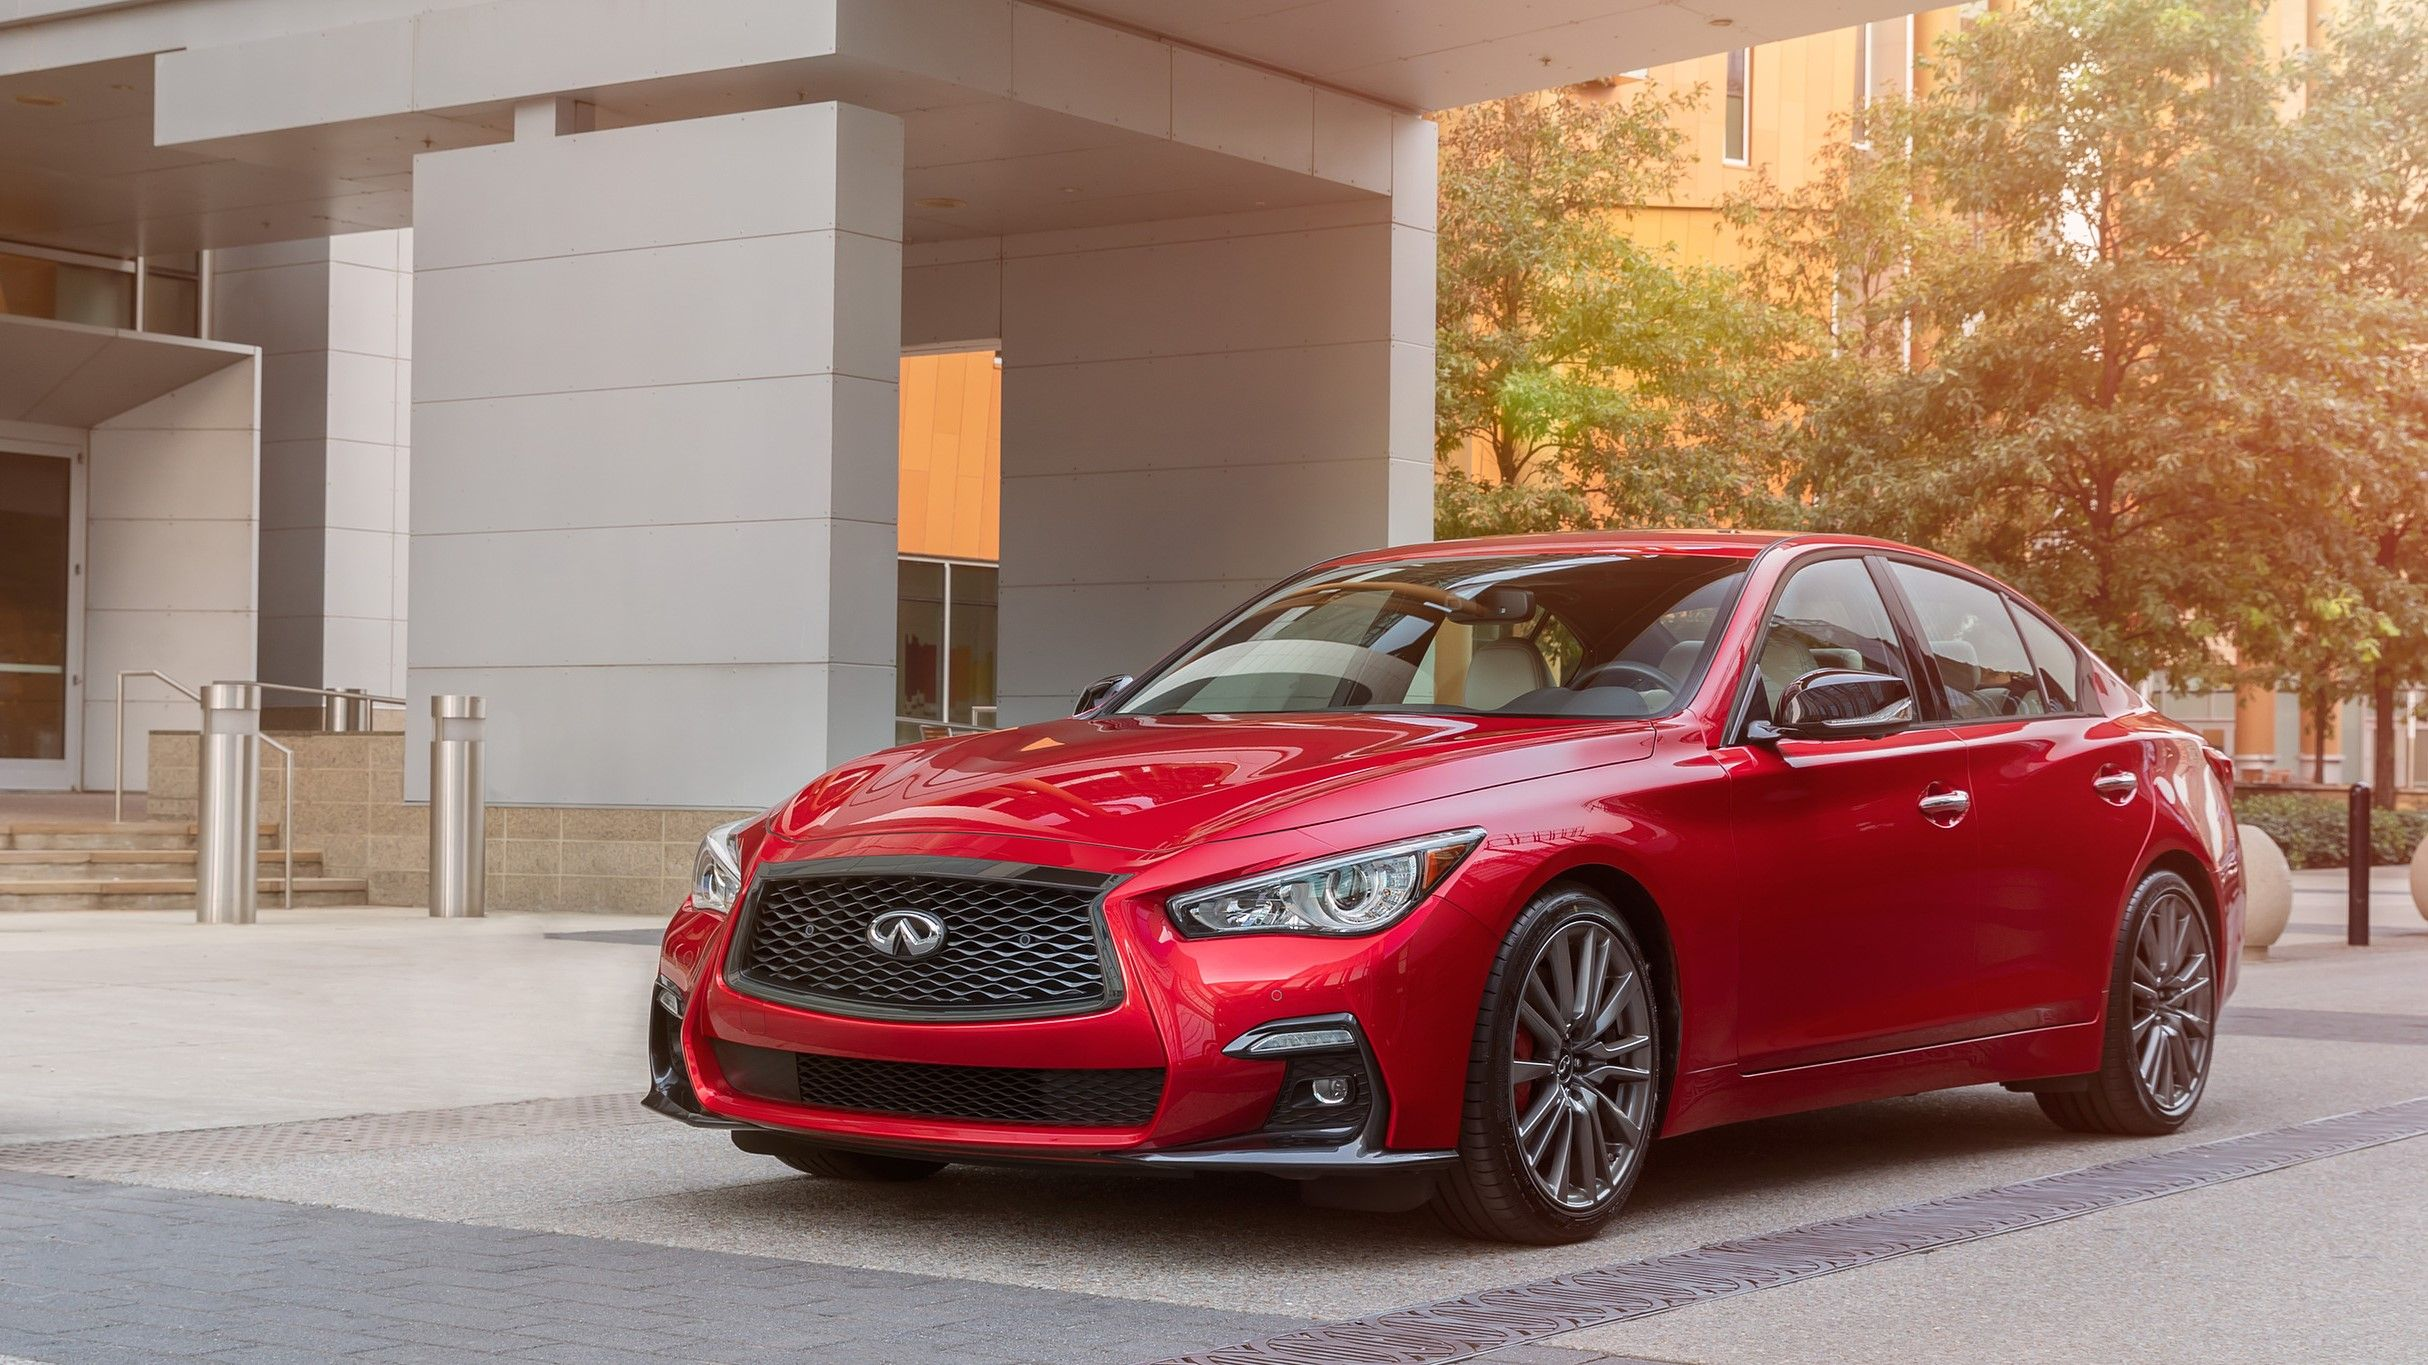 2021 Infiniti Q50 Red Sport Review Price Release Date Engine 0 60 Specs Interior And Rivals